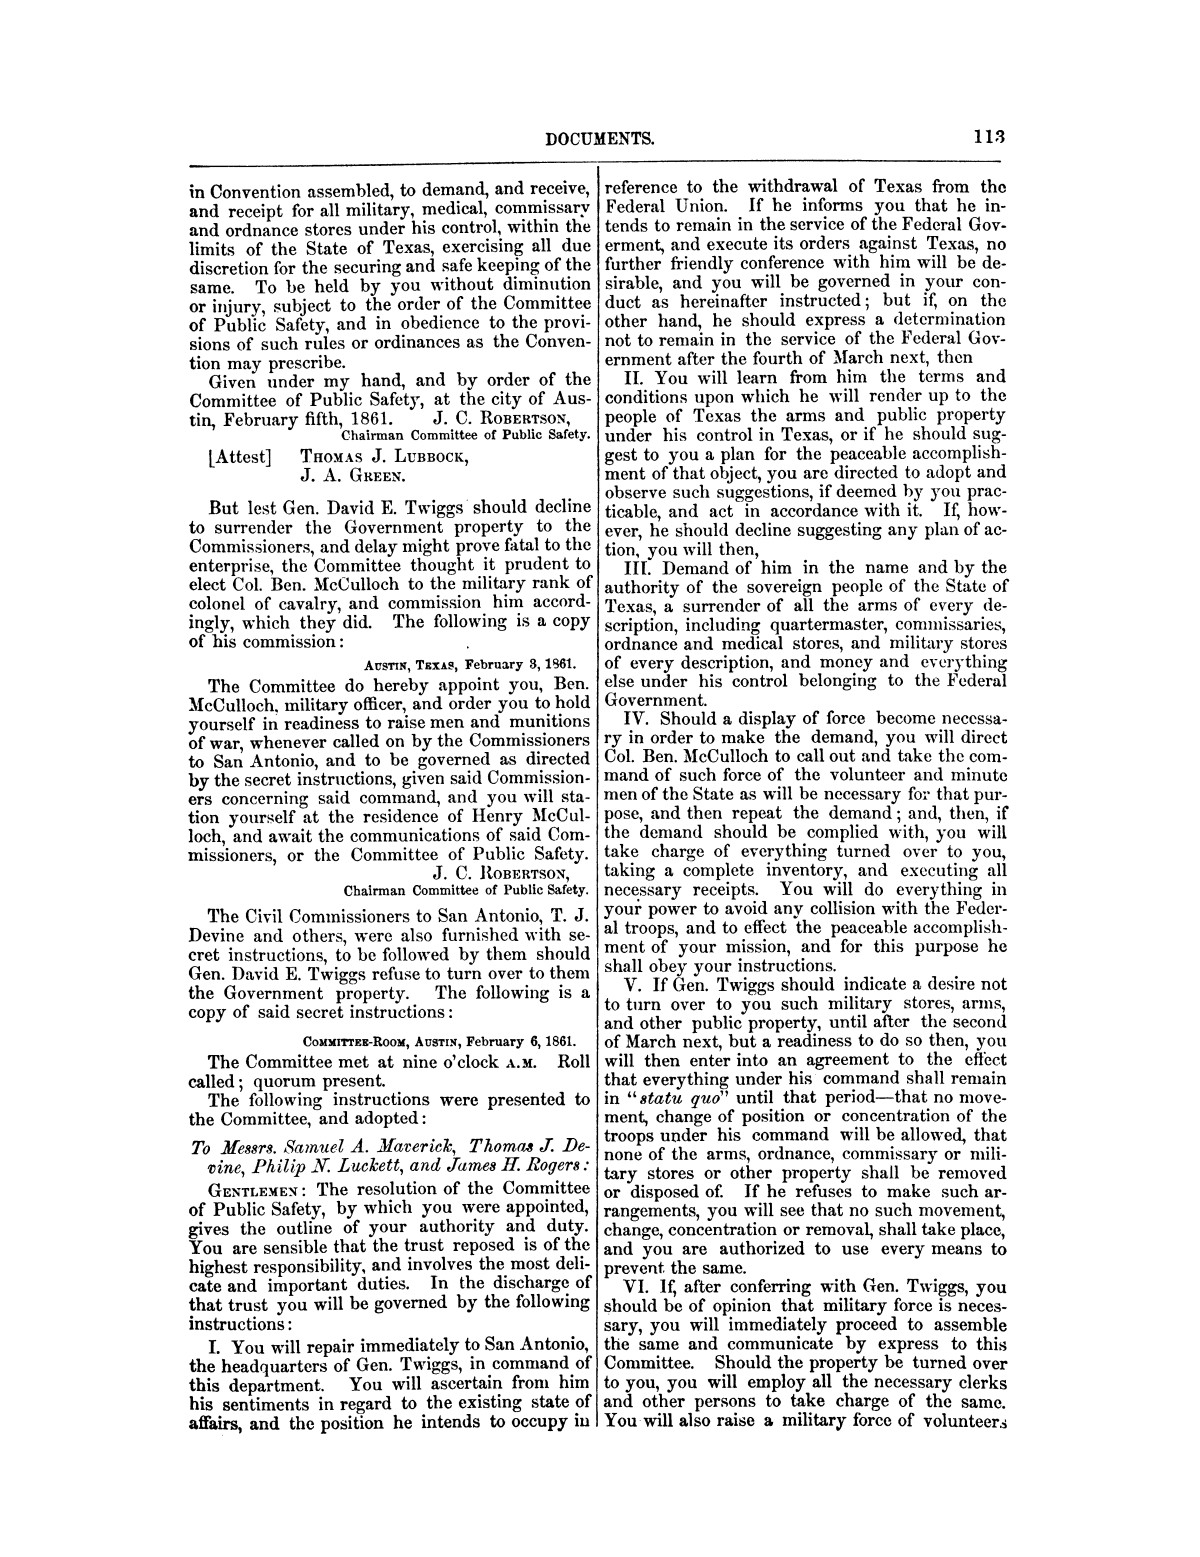 The treachery in Texas, the secession of Texas, and the arrest of the United States officers and soldiers serving in Texas. Read before the New-York Historical Society, June 25, 1861. By Major J. T. Sprague, U. S. A.                                                                                                      [Sequence #]: 7 of 36